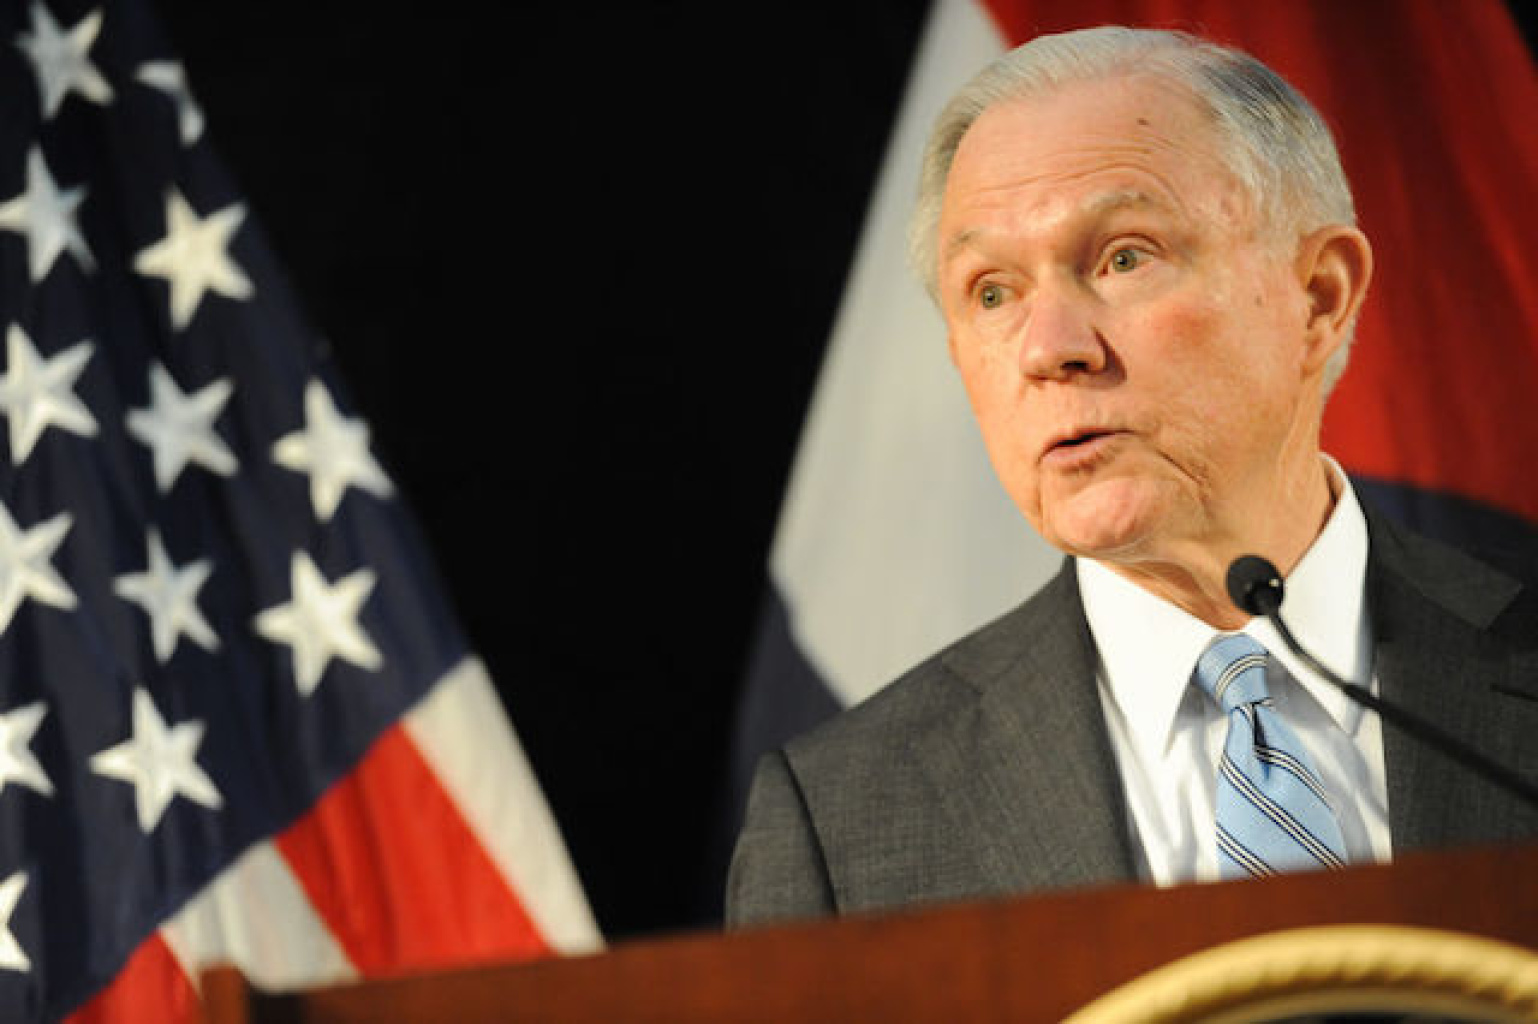 GettyImages-Sessions.jpg